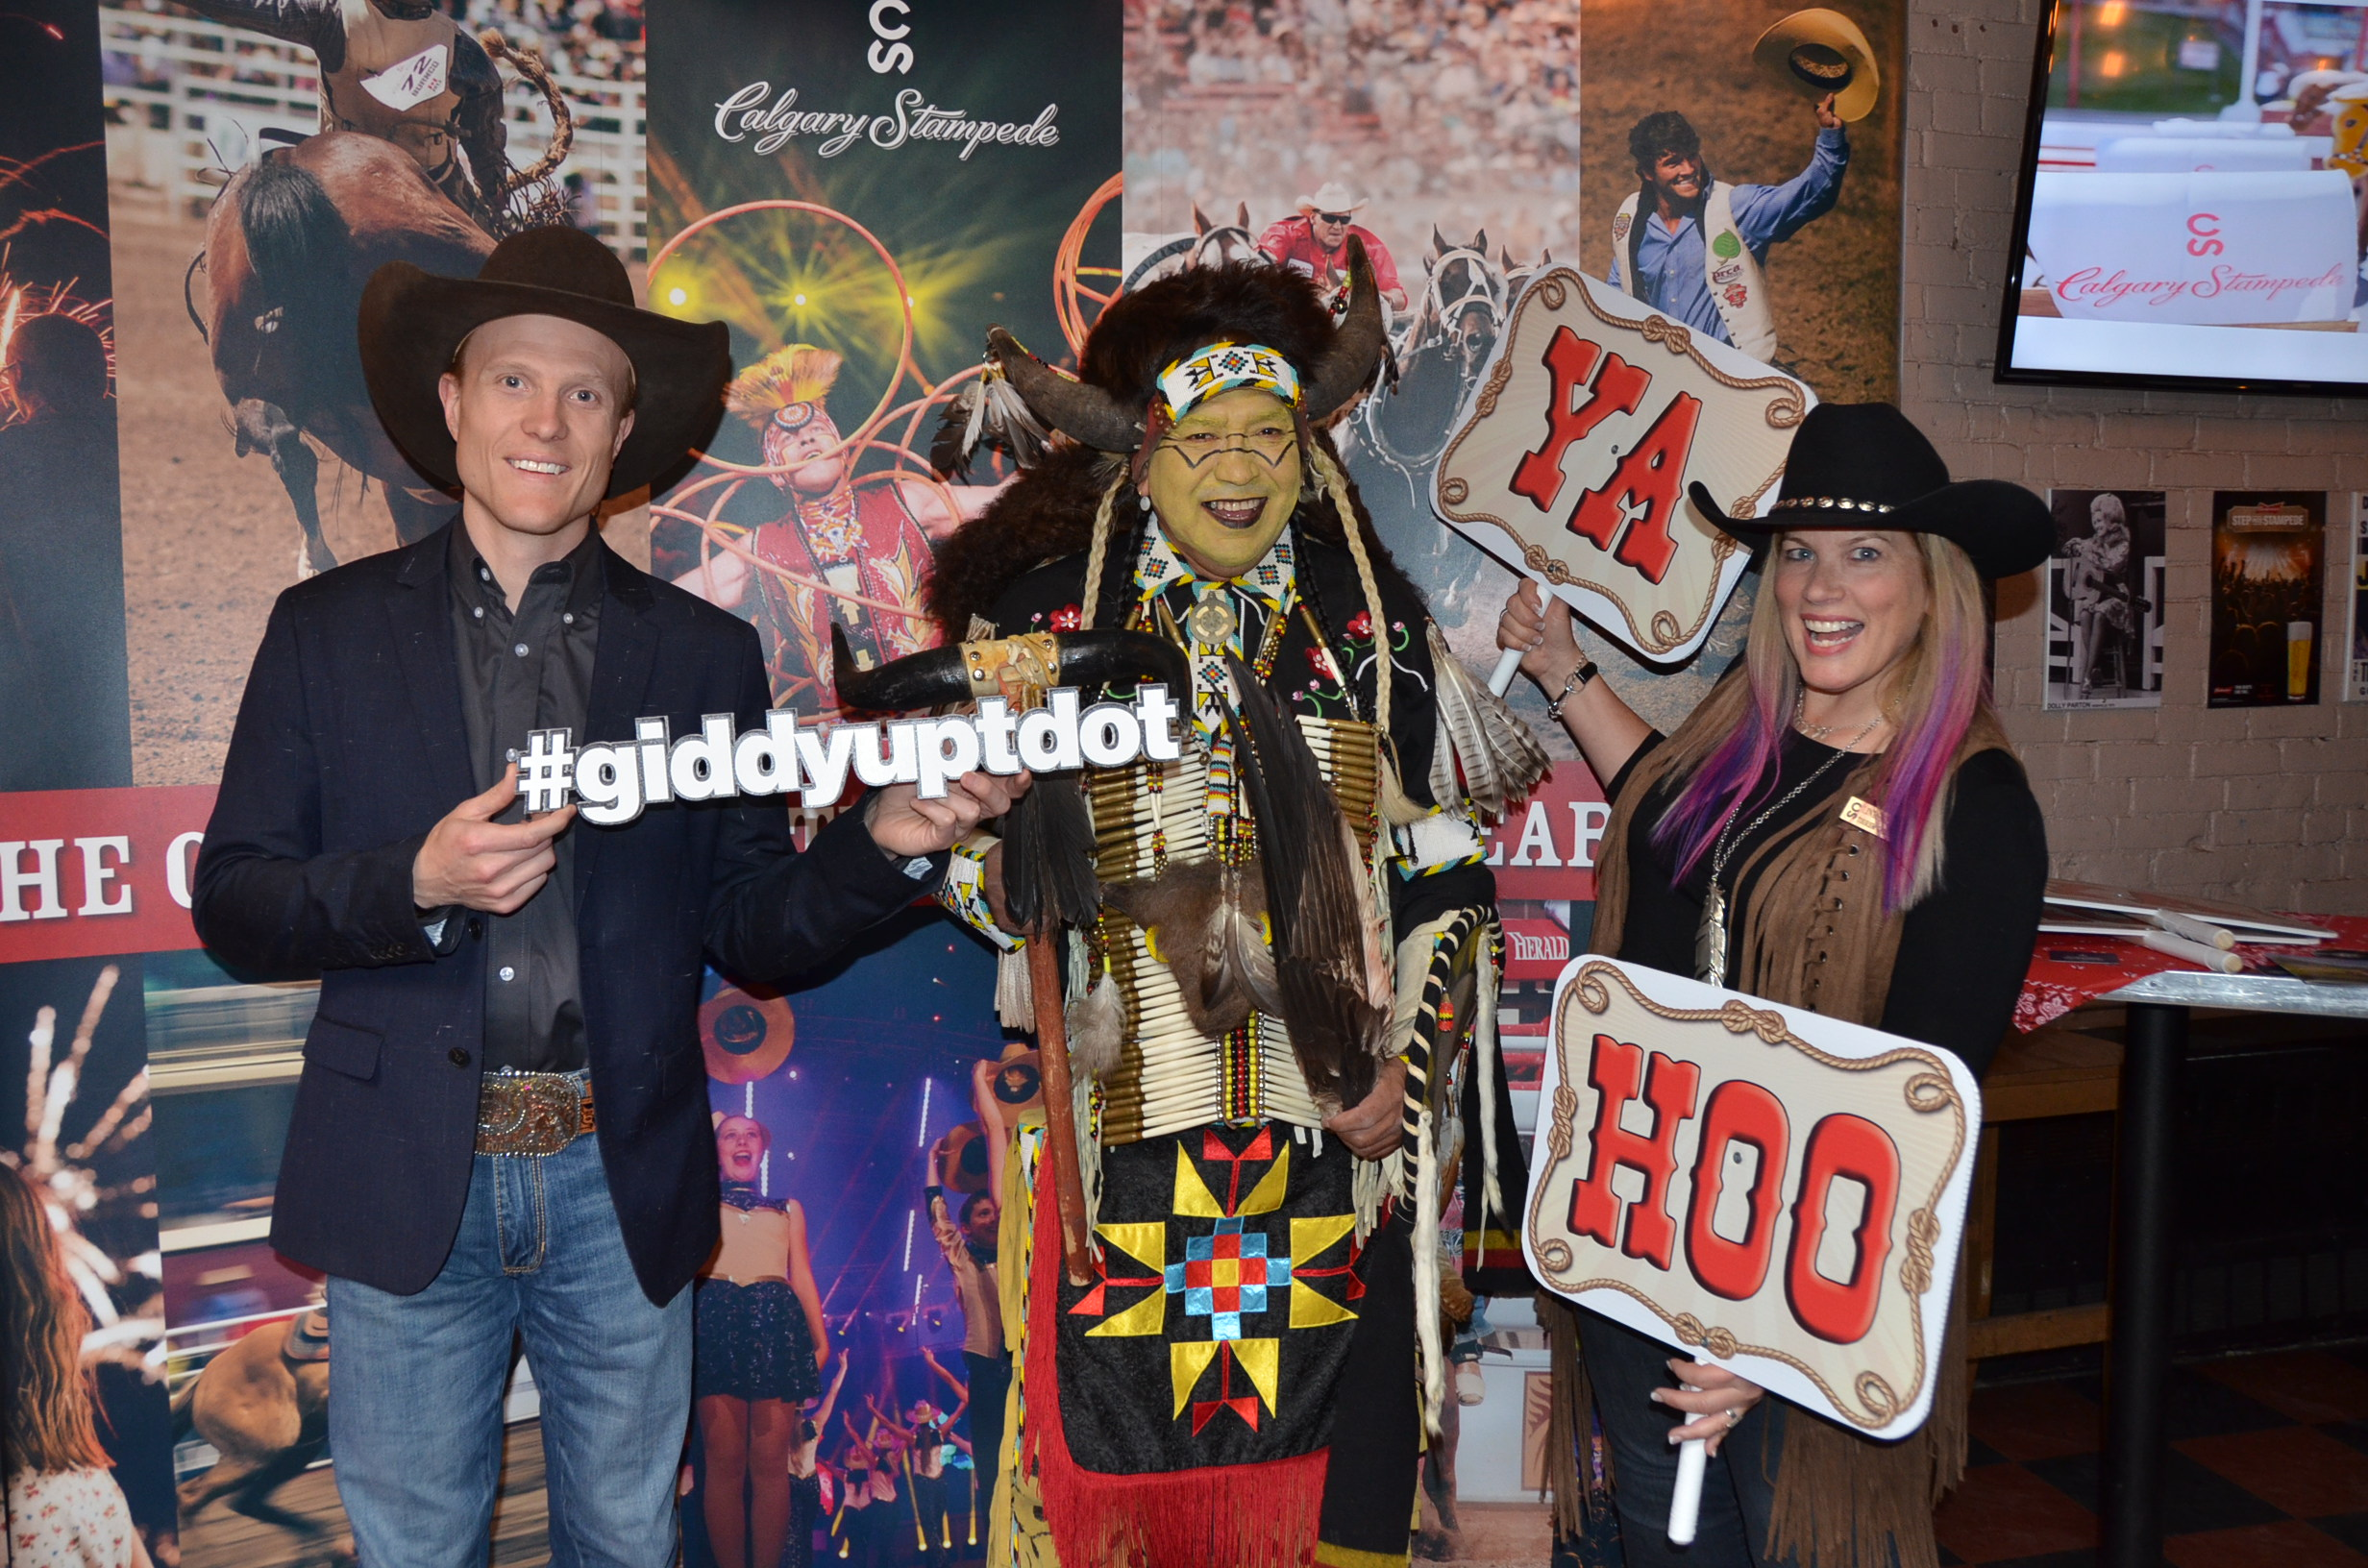 Giddying Up For The Calgary Stampede Travelpress